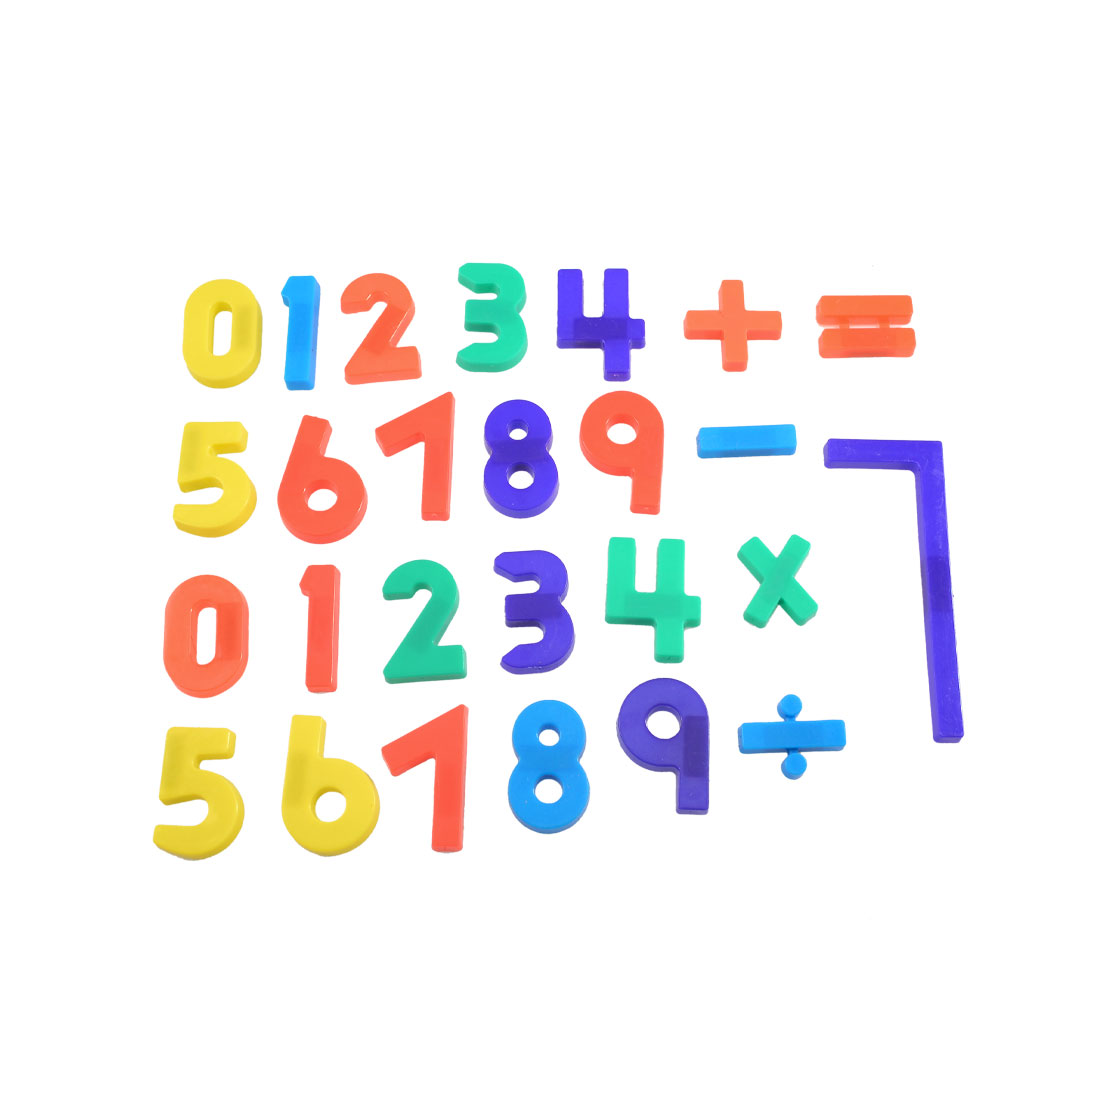 26 Pcs Colored Plastic Arabic Numbers Arithmetic Symbol Magnetic Stickers